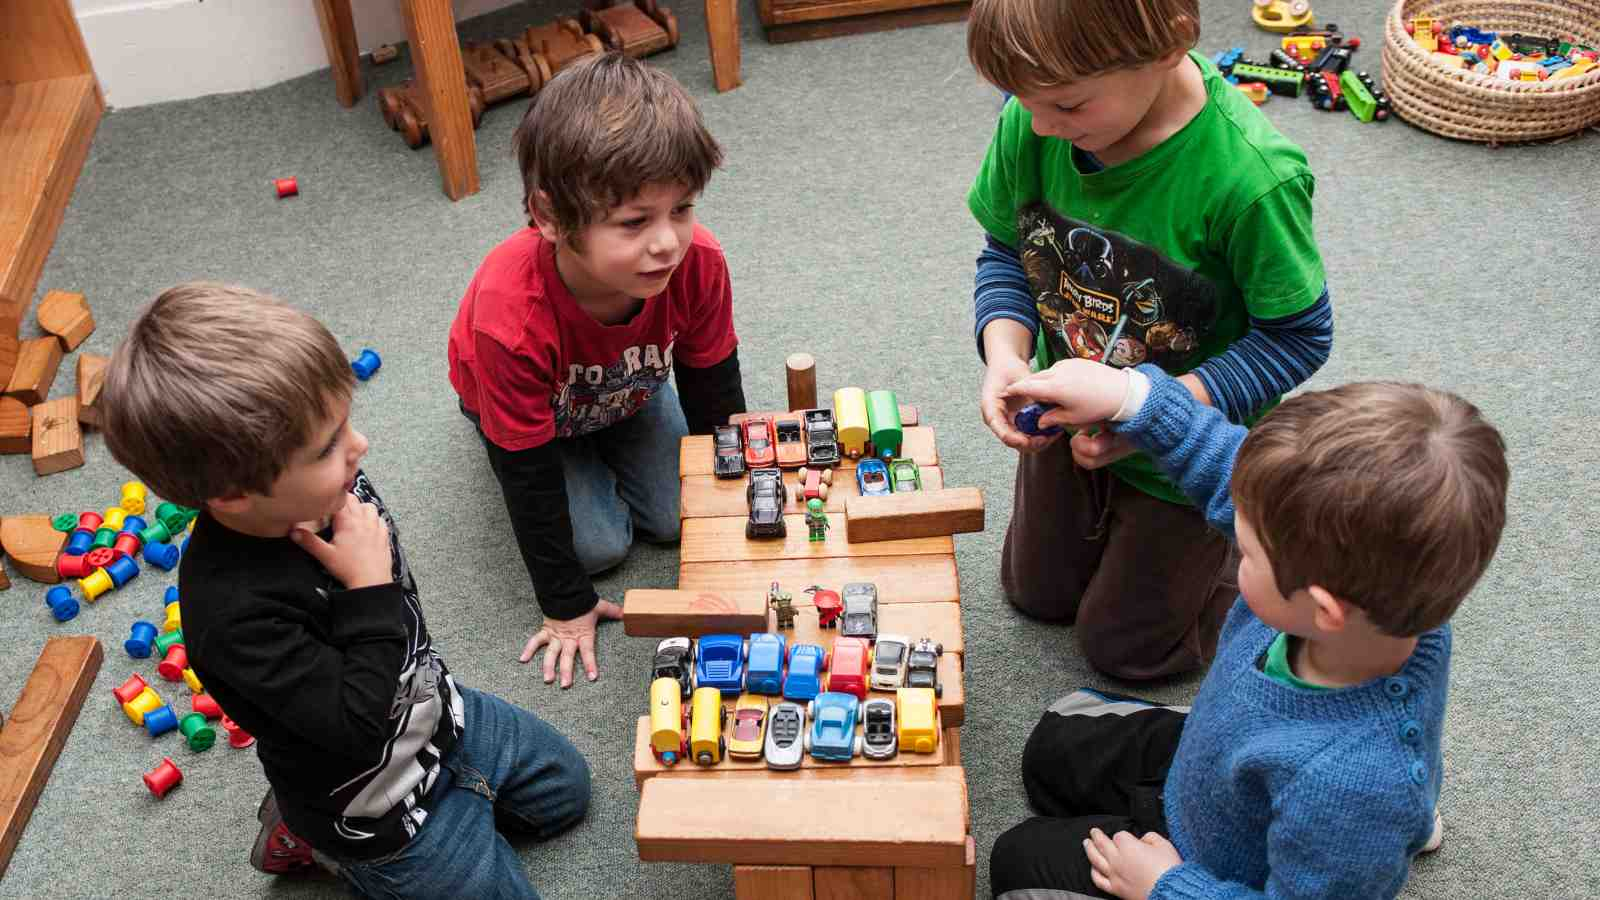 Four young boys play with blocks and toy cars together.